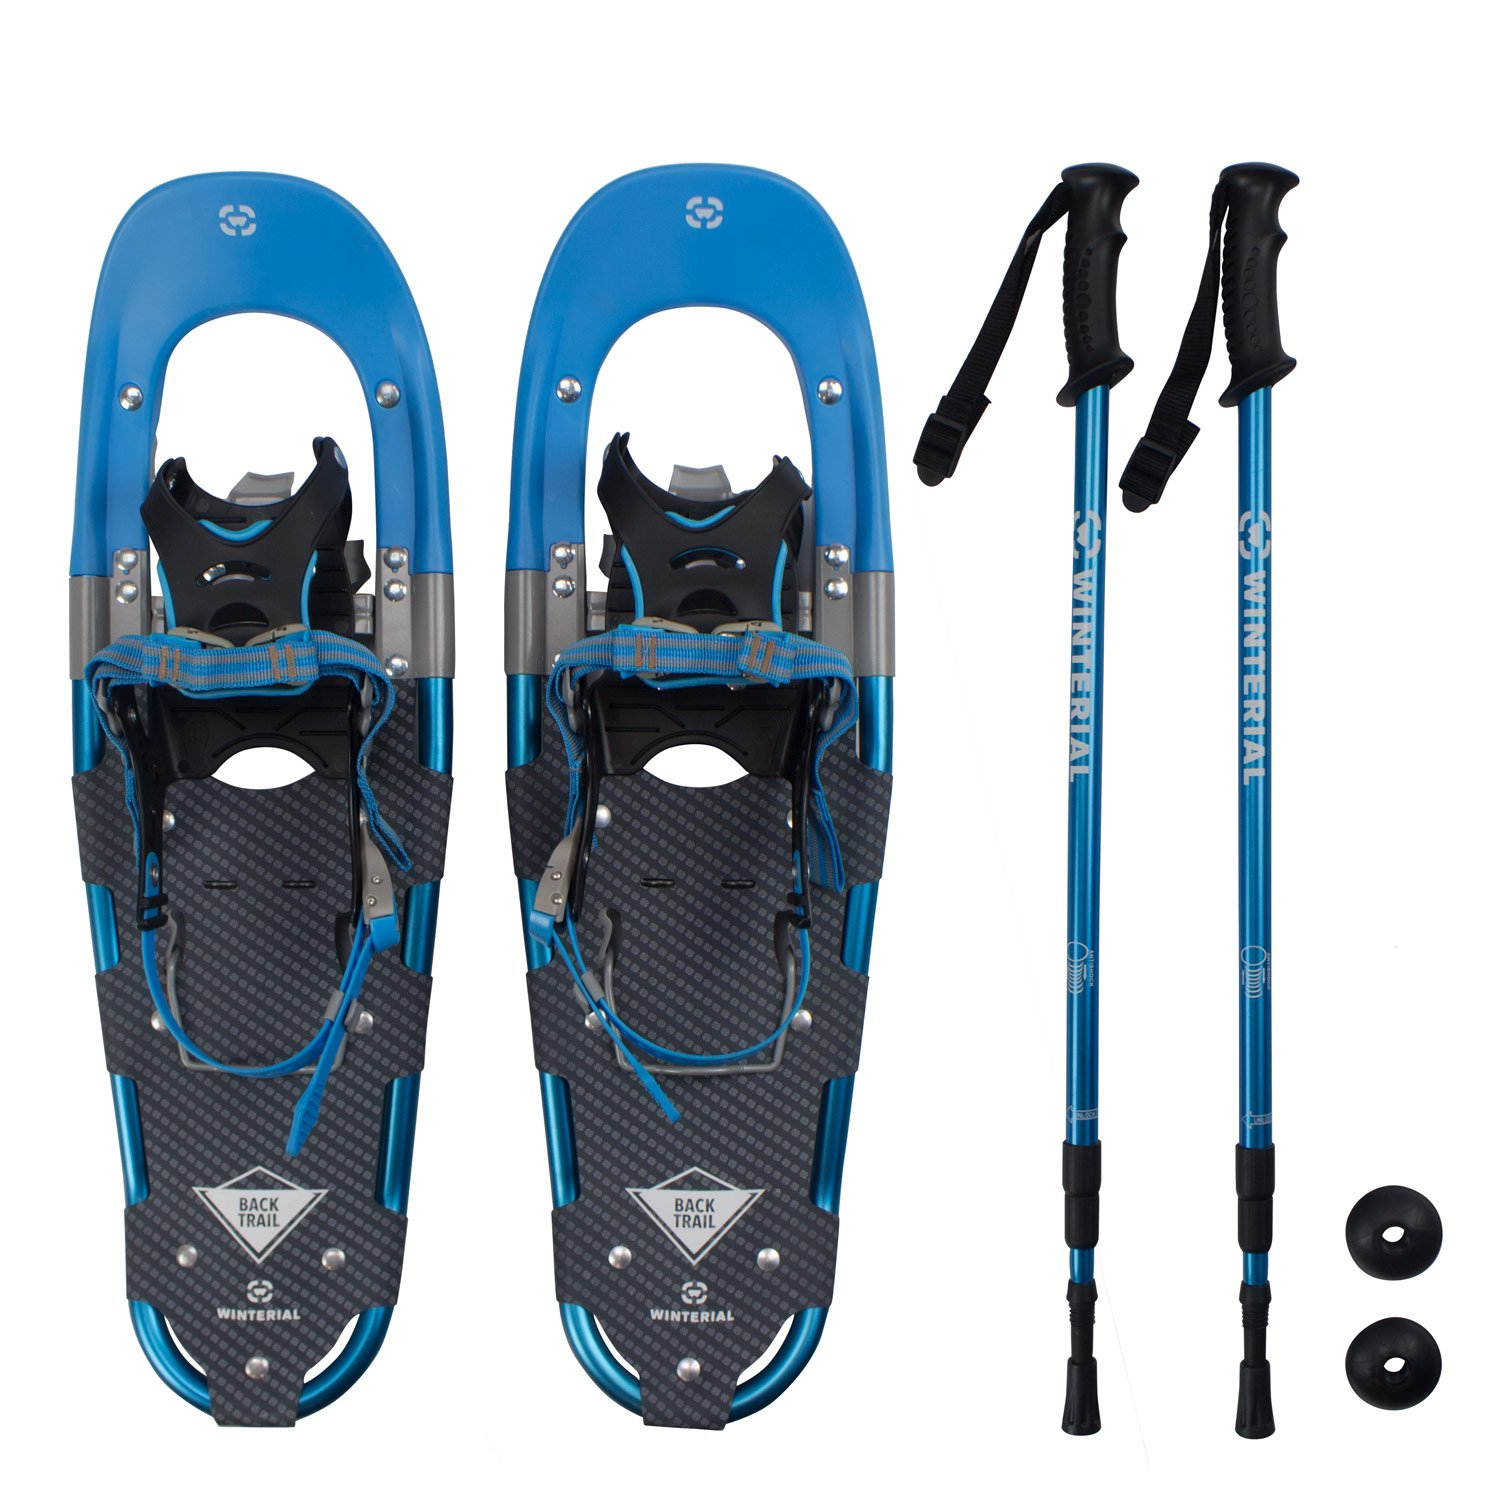 Winterial Back Trail Snowshoes/Recreational Snowshoes/Snowshoeing/Snowshoe/Backcountry Snowshoeing/Rolling Terrain Snowshoes/POLES INCLUDED! by Winterial